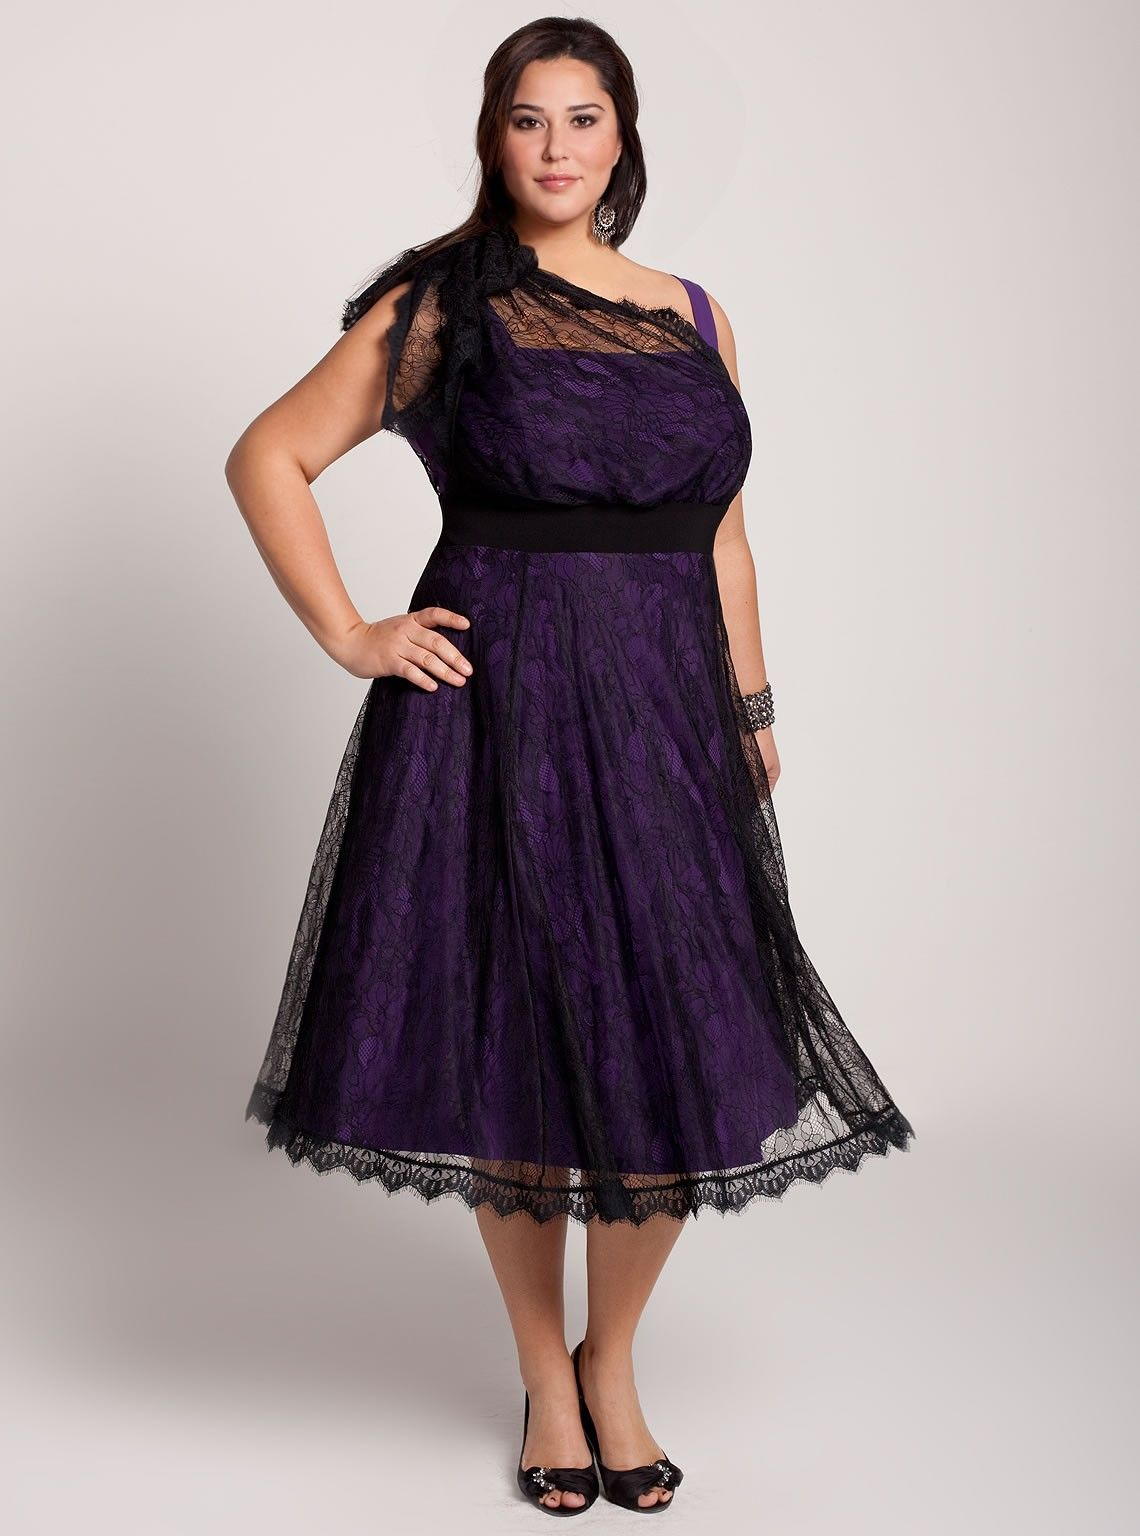 Plus size dresses for a wedding  Jr Plus Size Formal Dresses  plus size dresses keira   KB